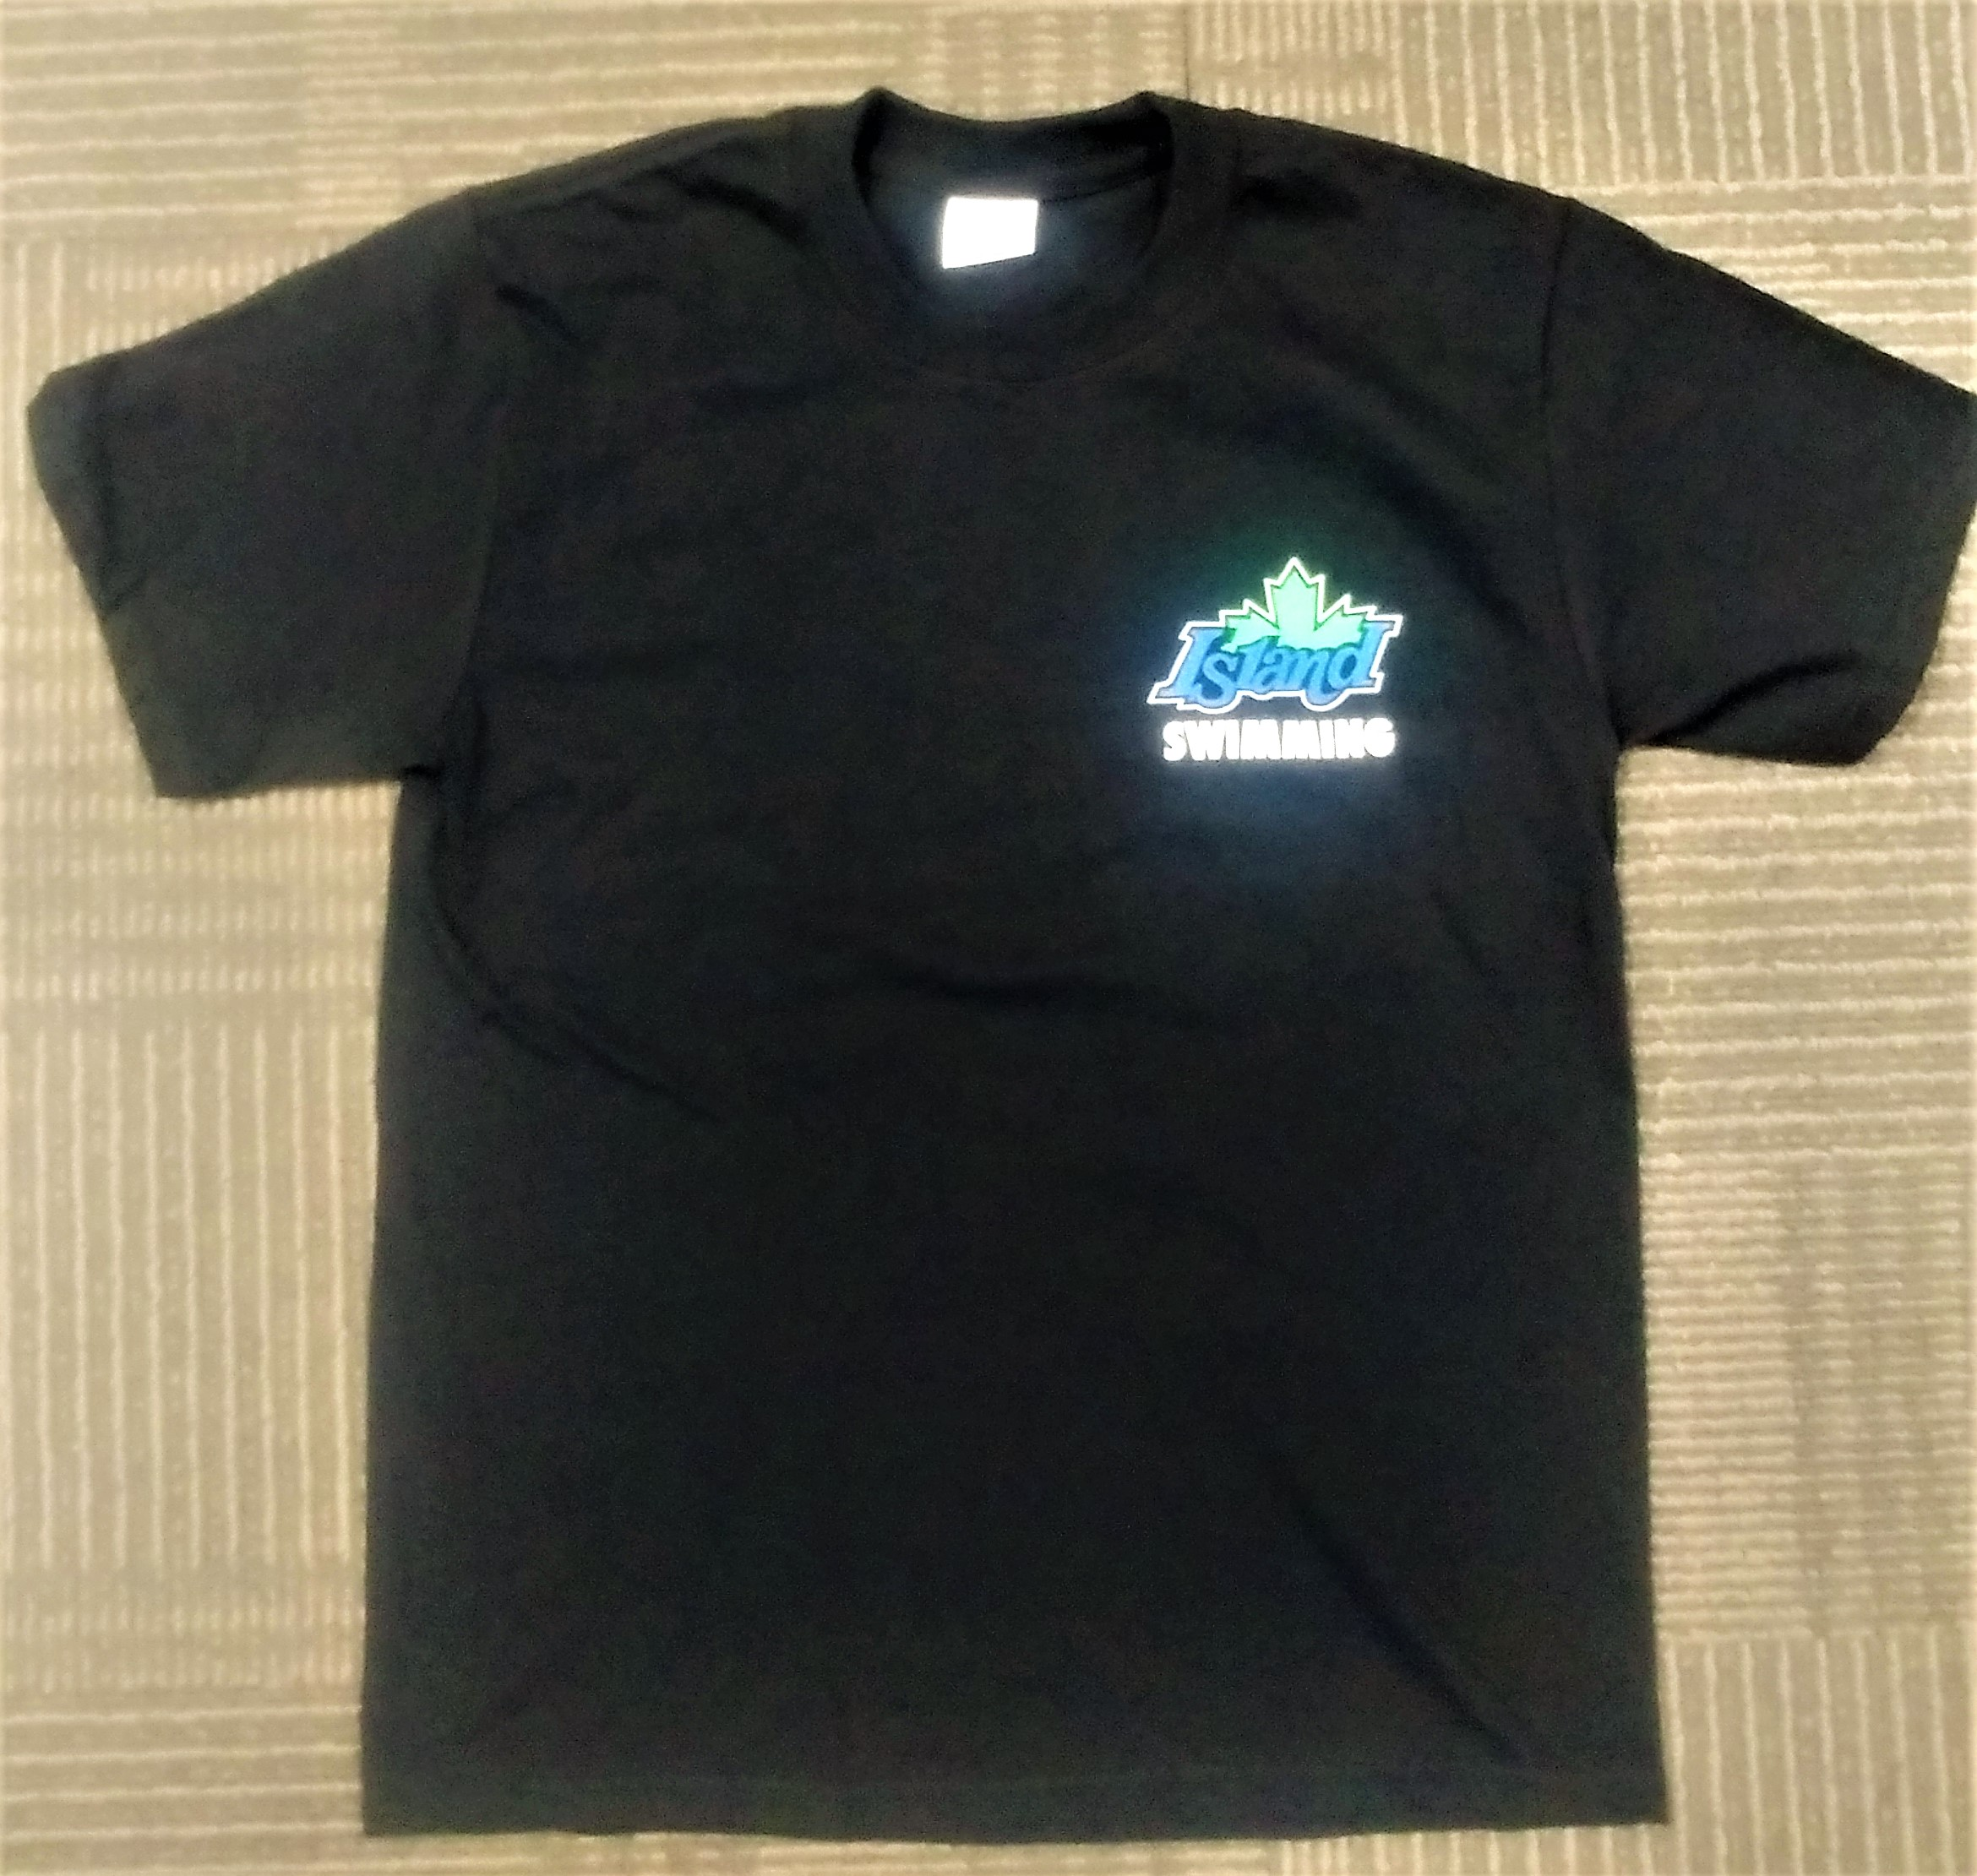 Youth Large Black Island Swimming team T-shirt with colour logos